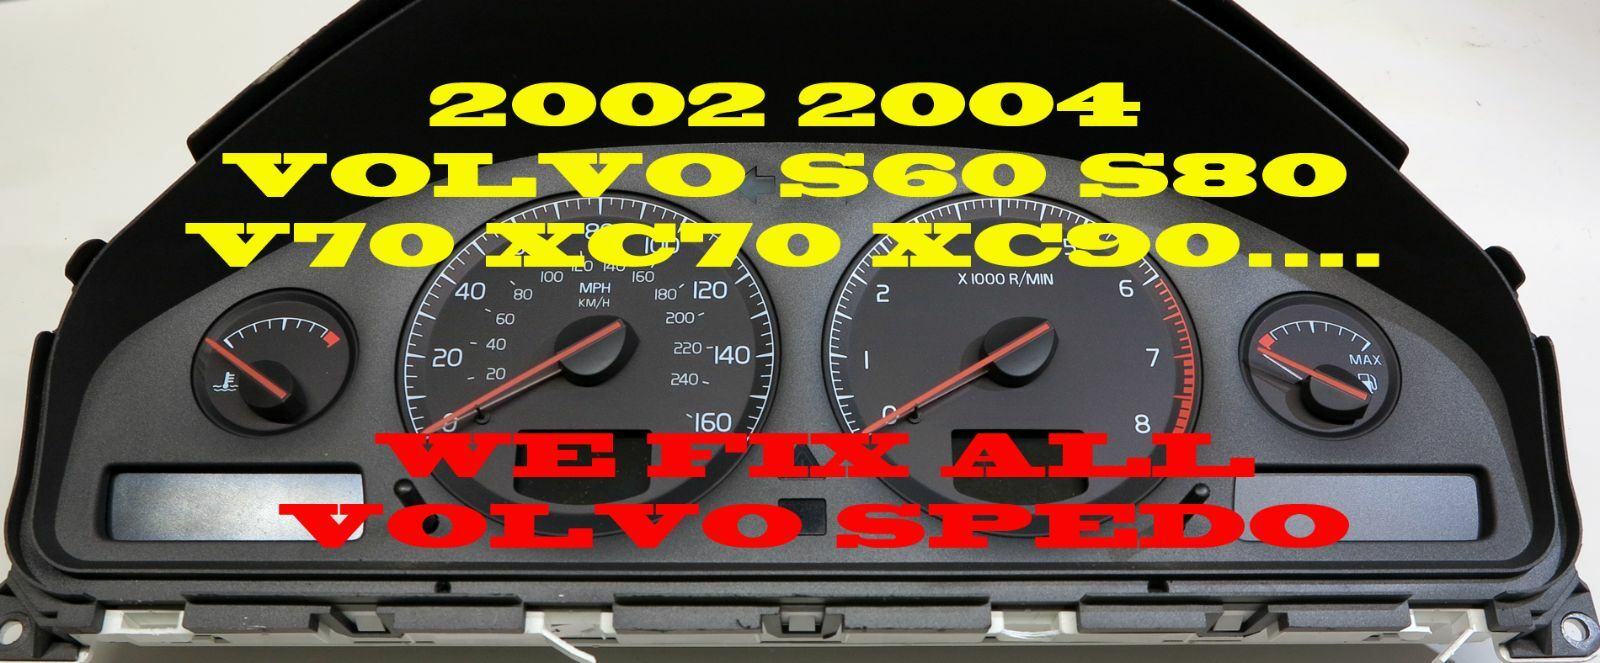 VOLVO S60 S80 V70 XC70 XC90 INSTRUMENT CLUSTER SOFTWARE & ODOMETER CALIBRATION